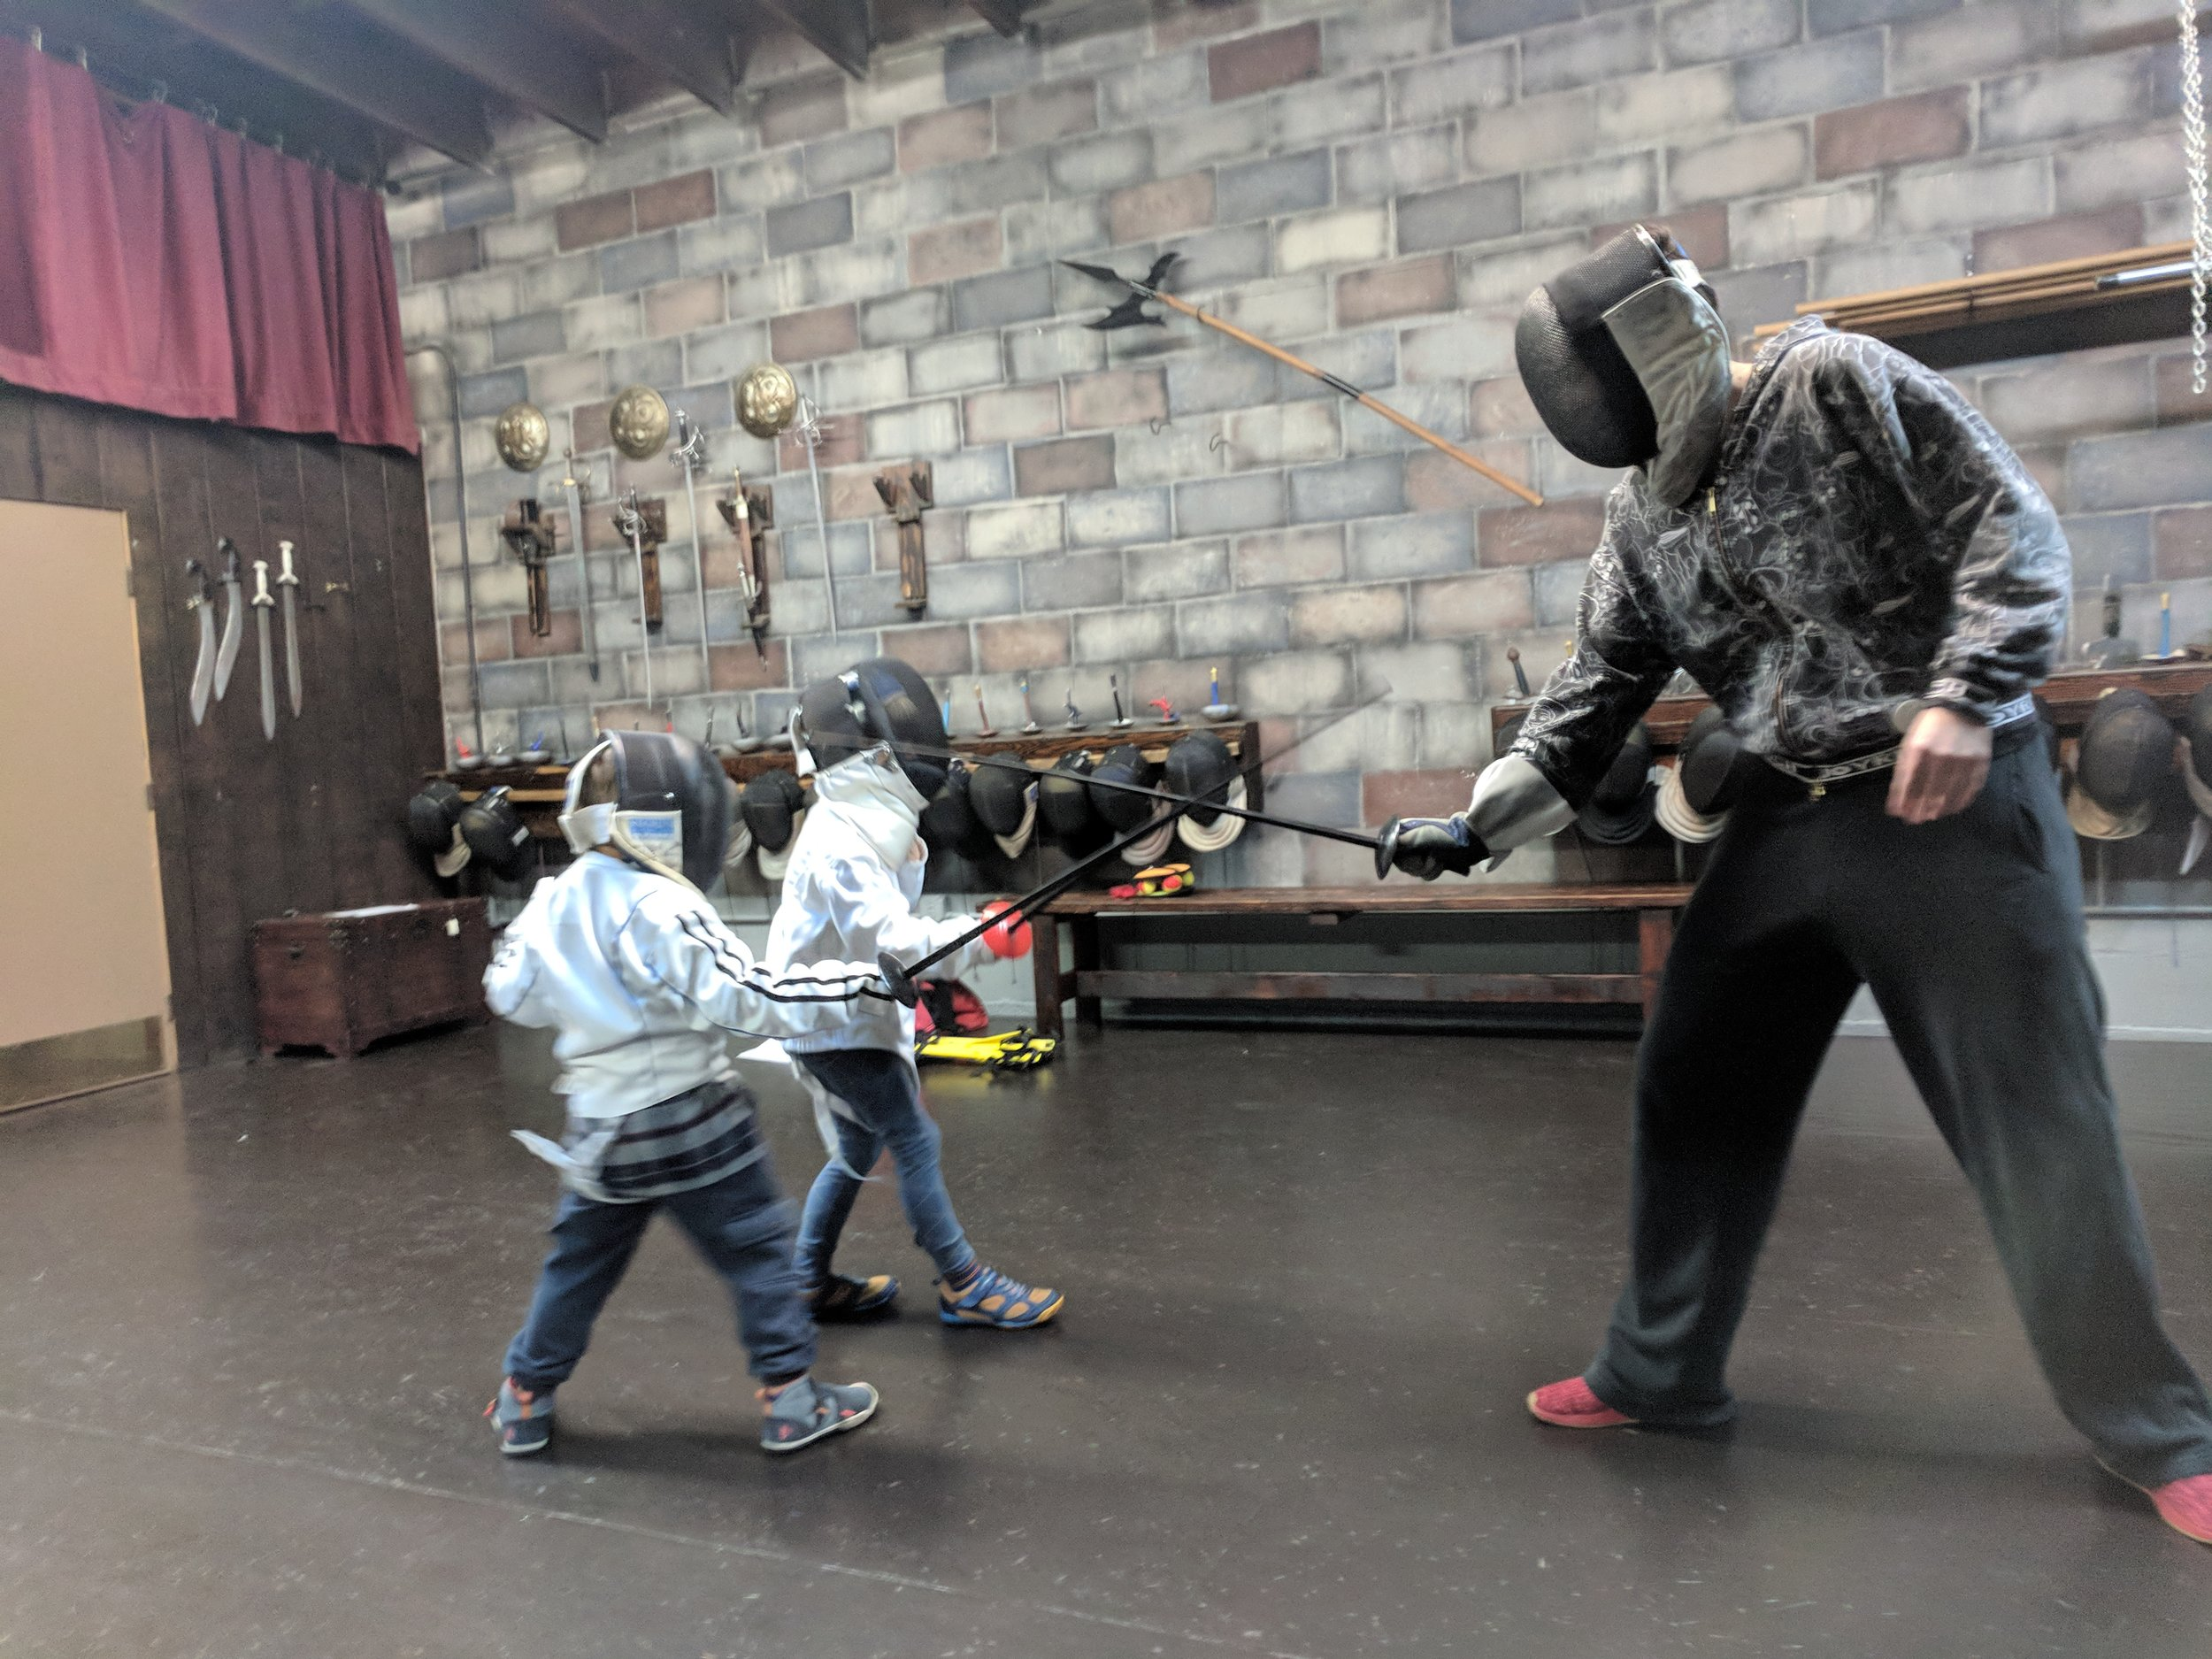 Fencing for kids at Swordplay LA fencing school.